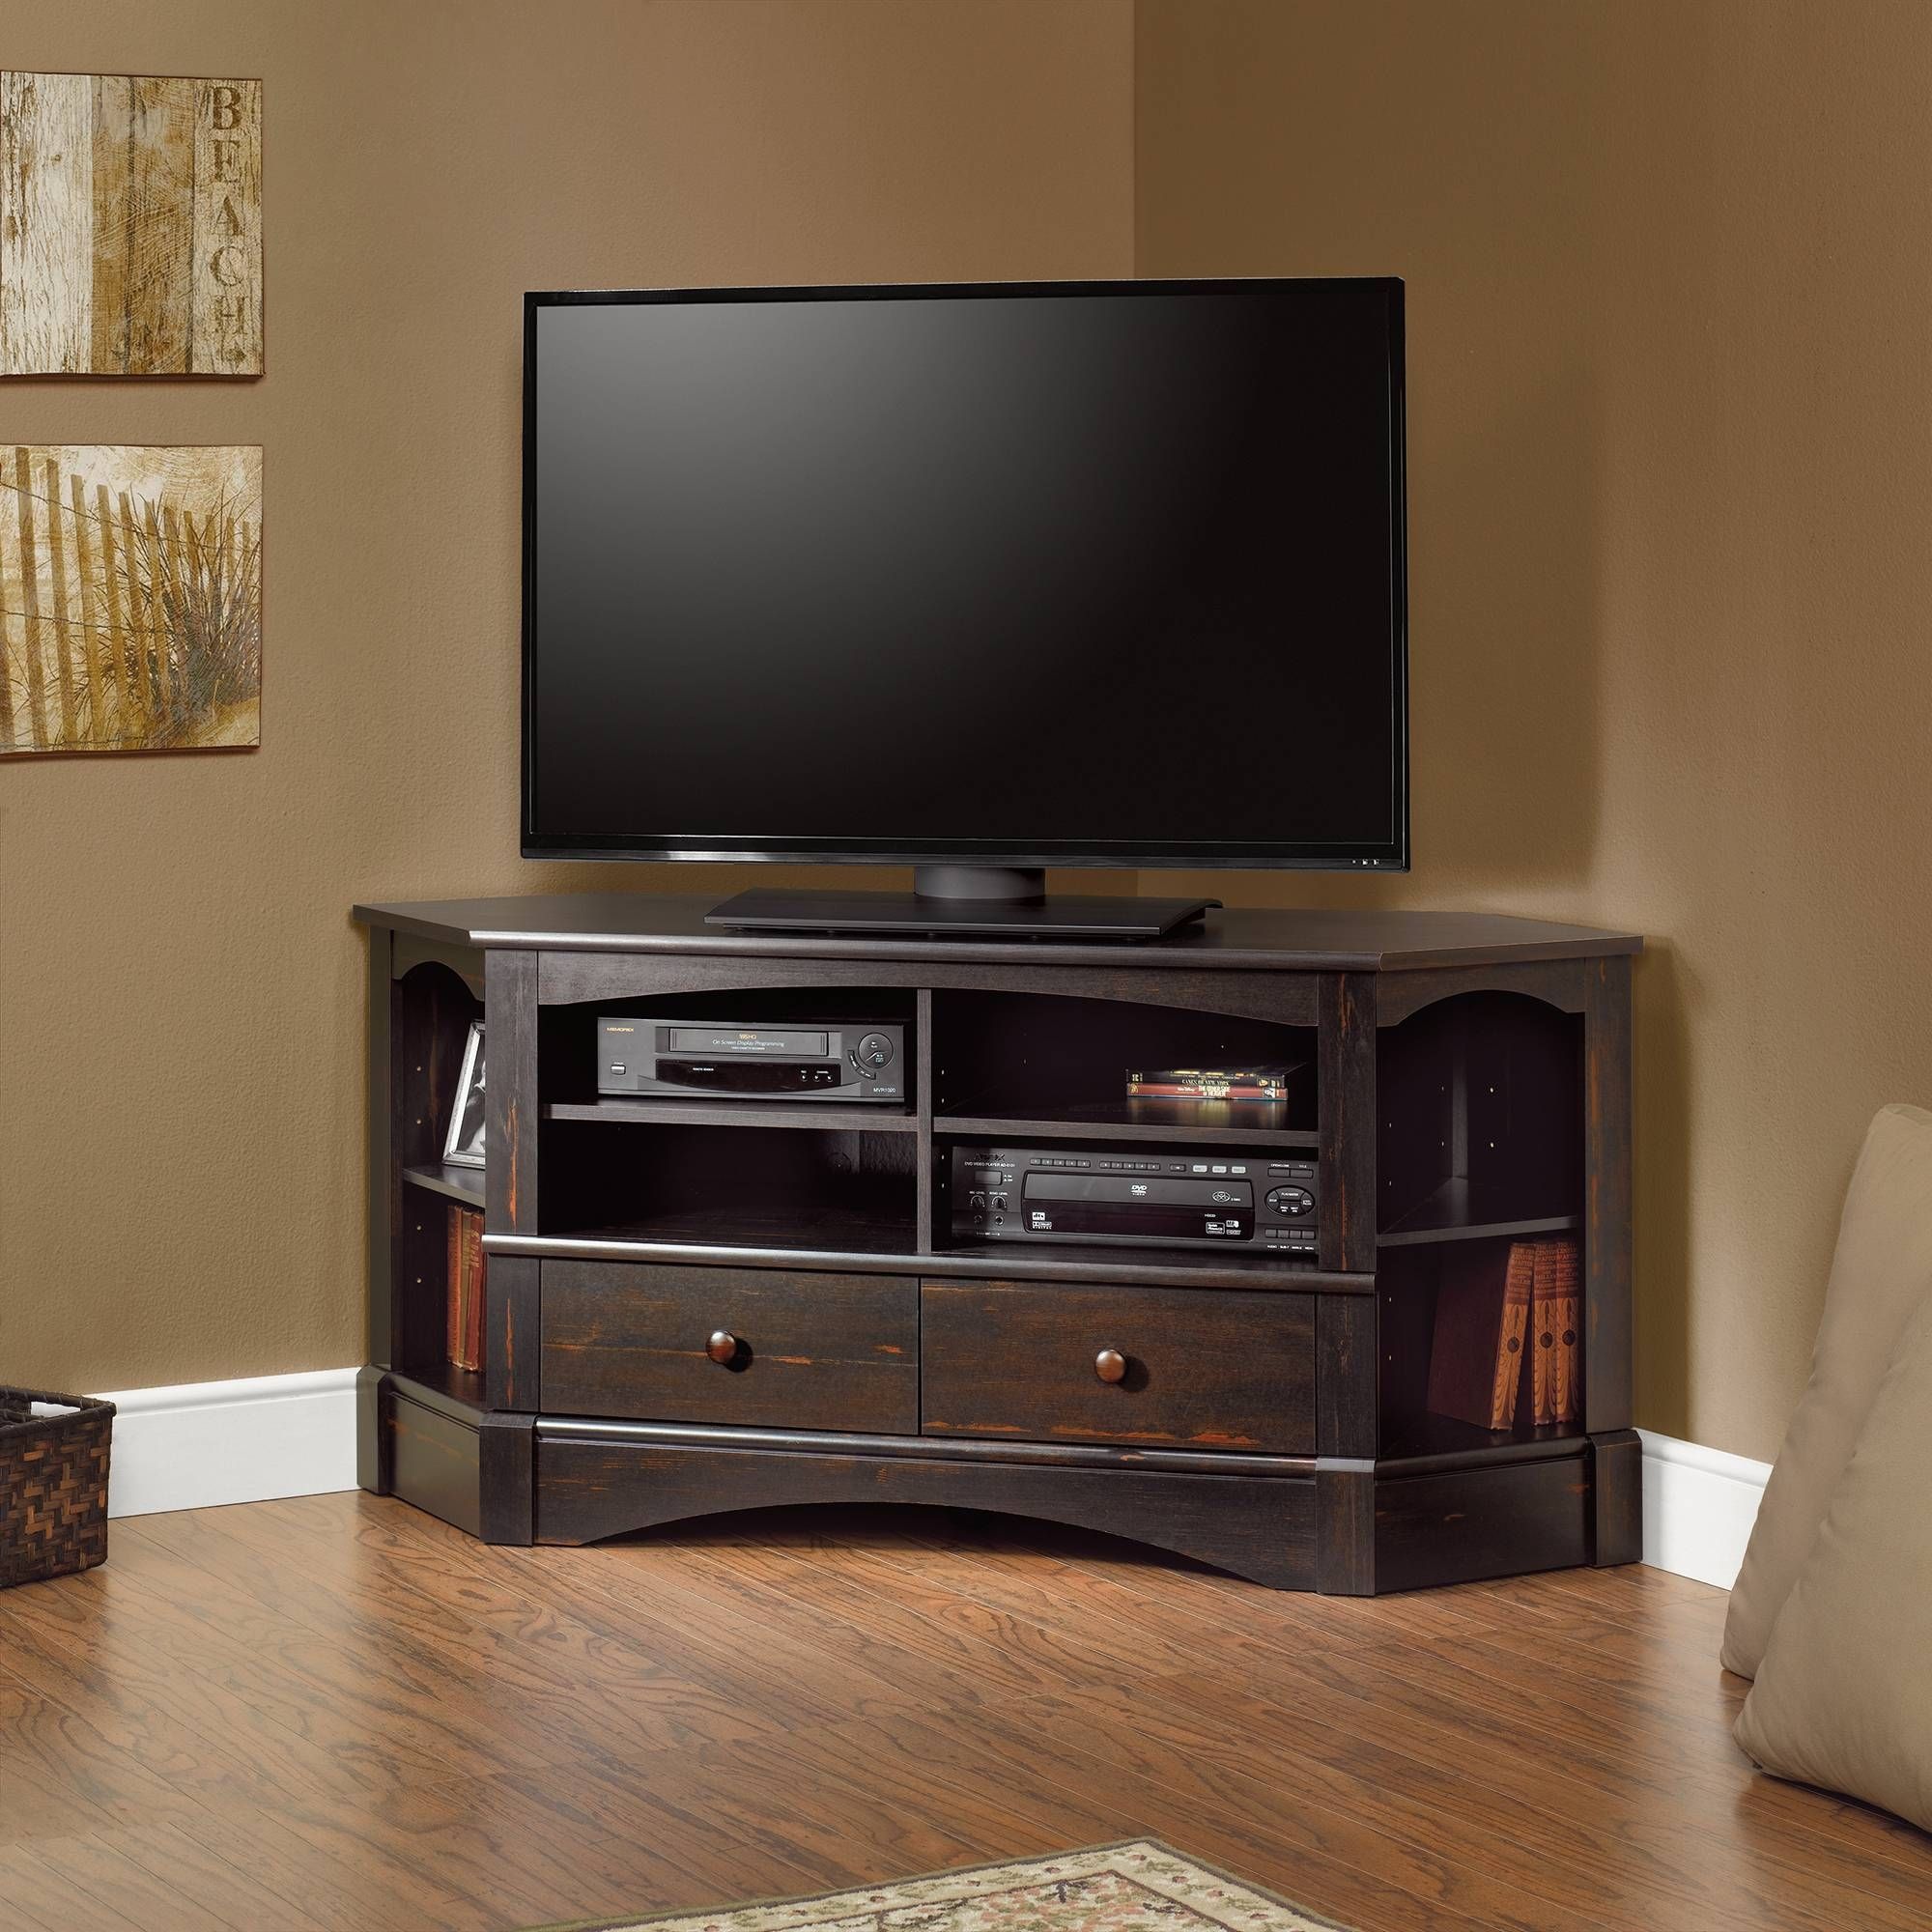 Harbor View | Corner Entertainment Credenza | 402902 | Sauder Inside Corner Tv Stands With Drawers (View 2 of 15)